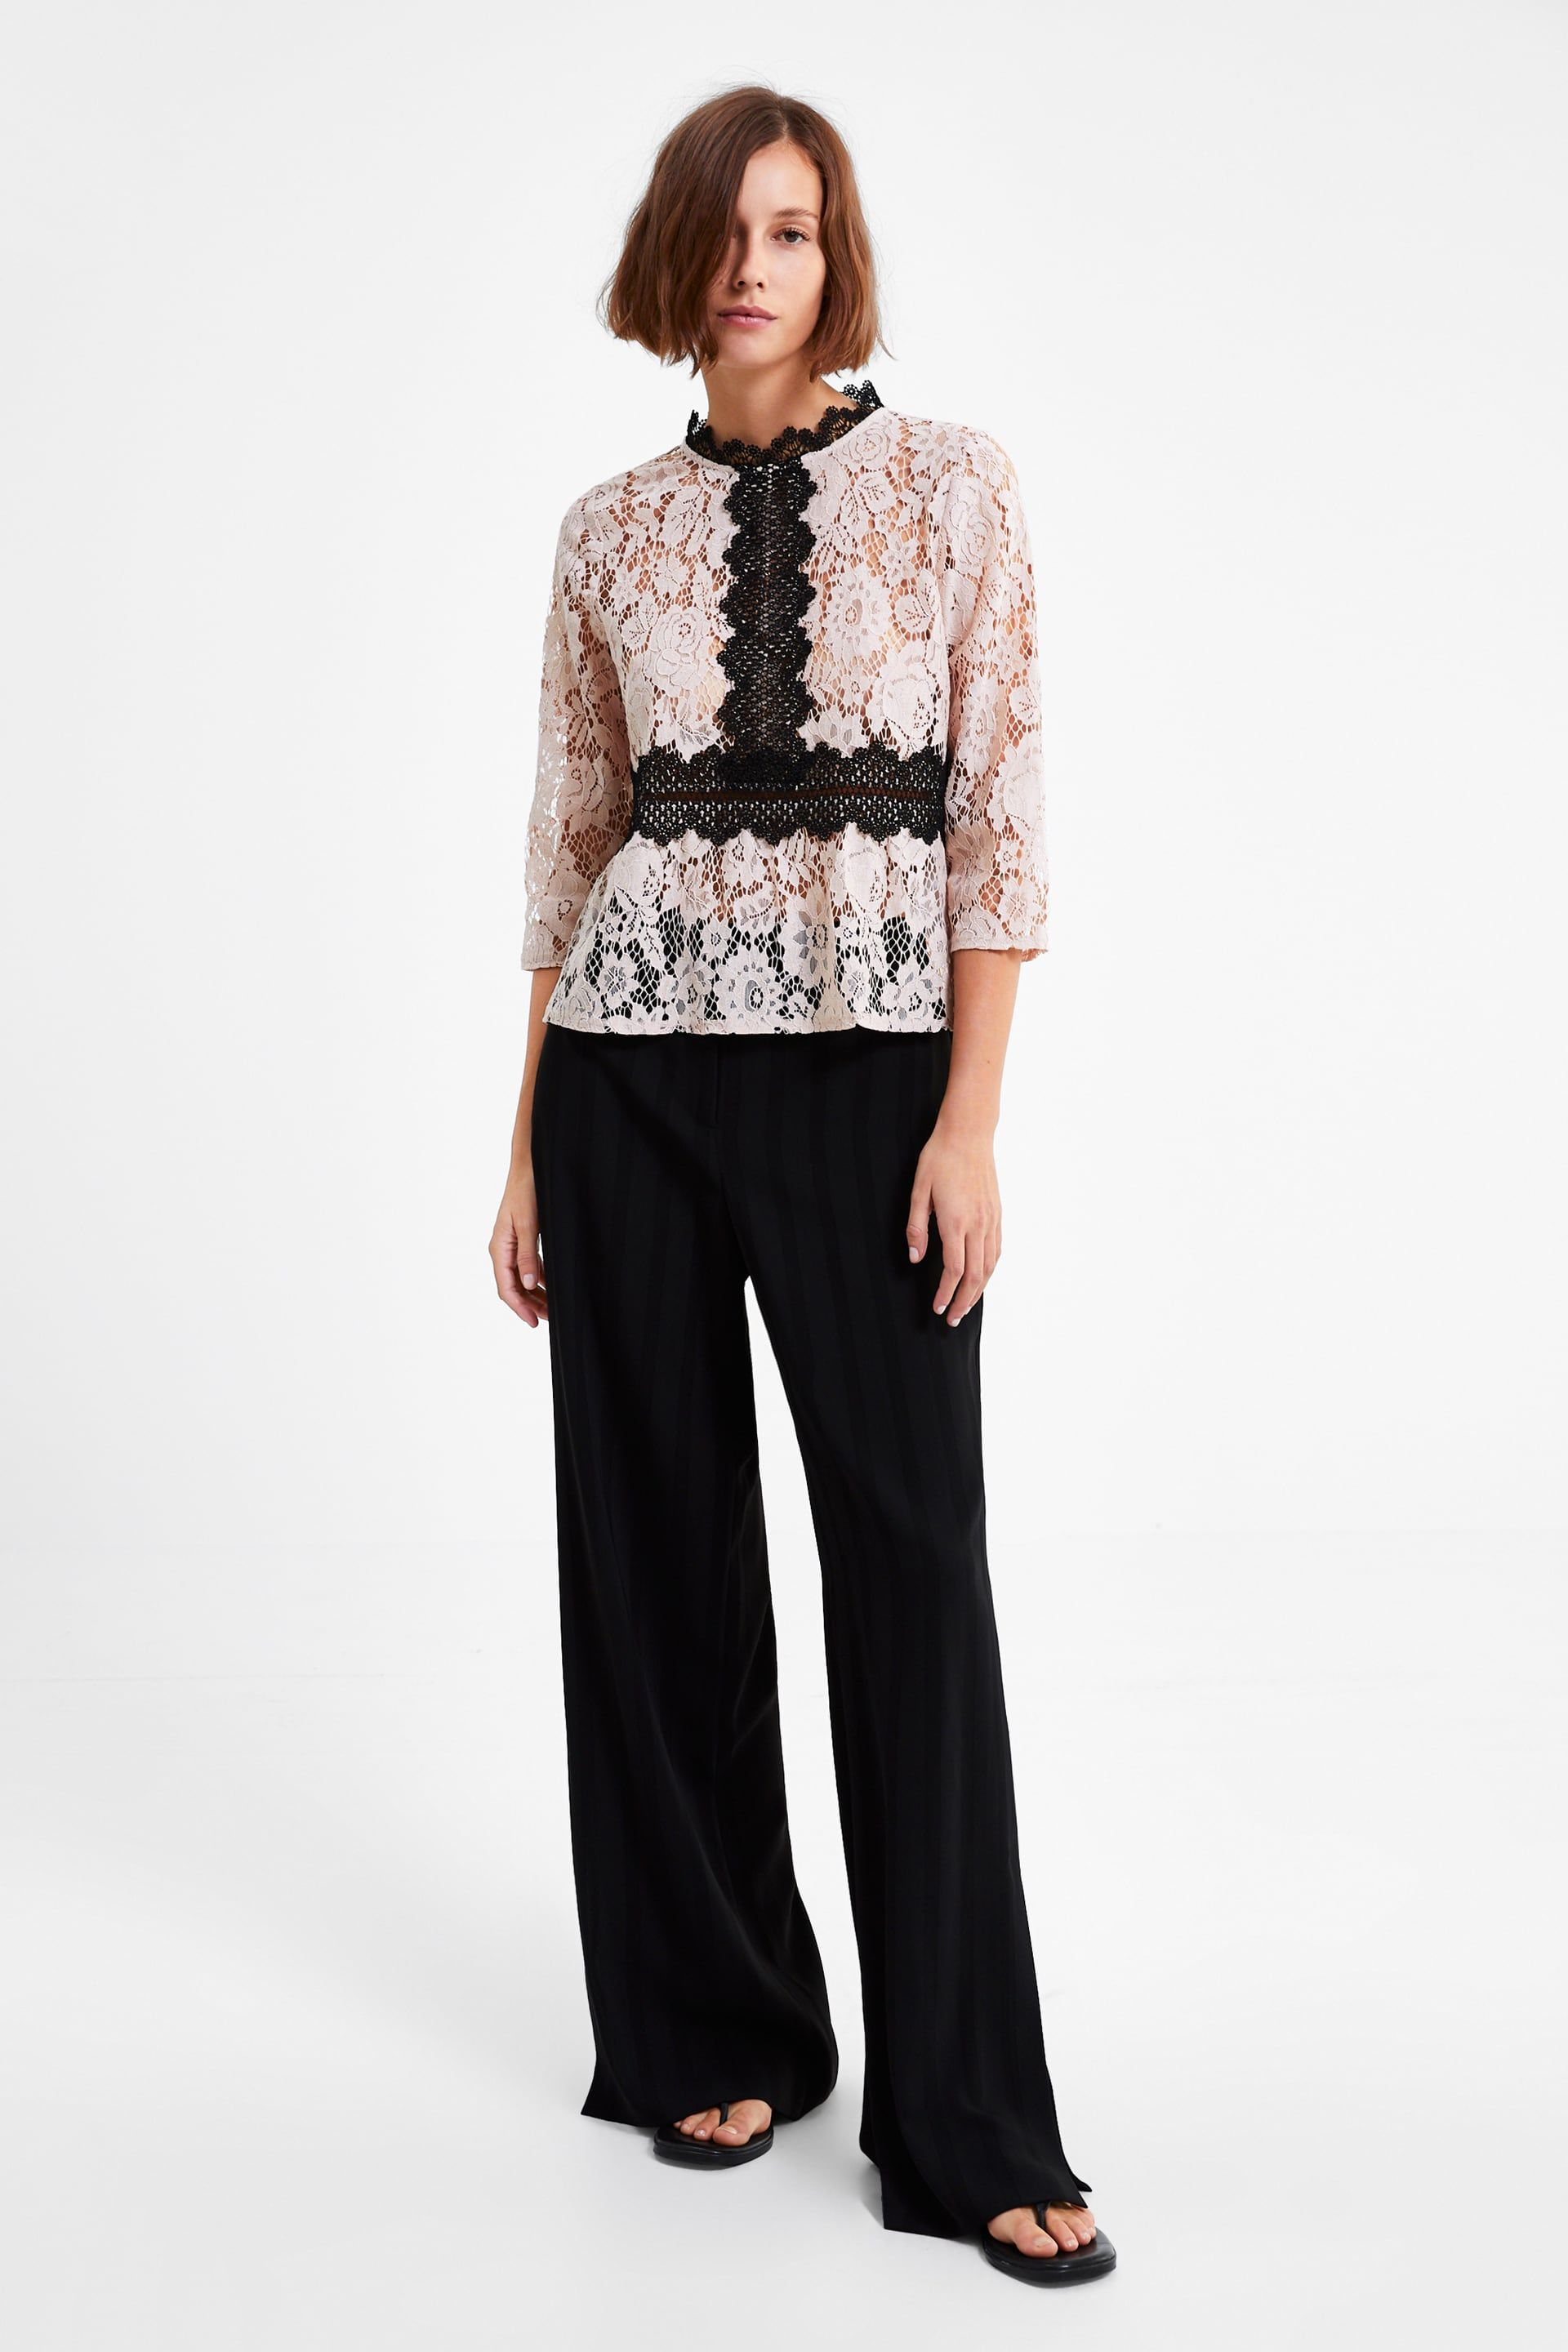 d5e4672abe Contrast lace top in 2019 | Style Inspirations | Lace, Crochet ...